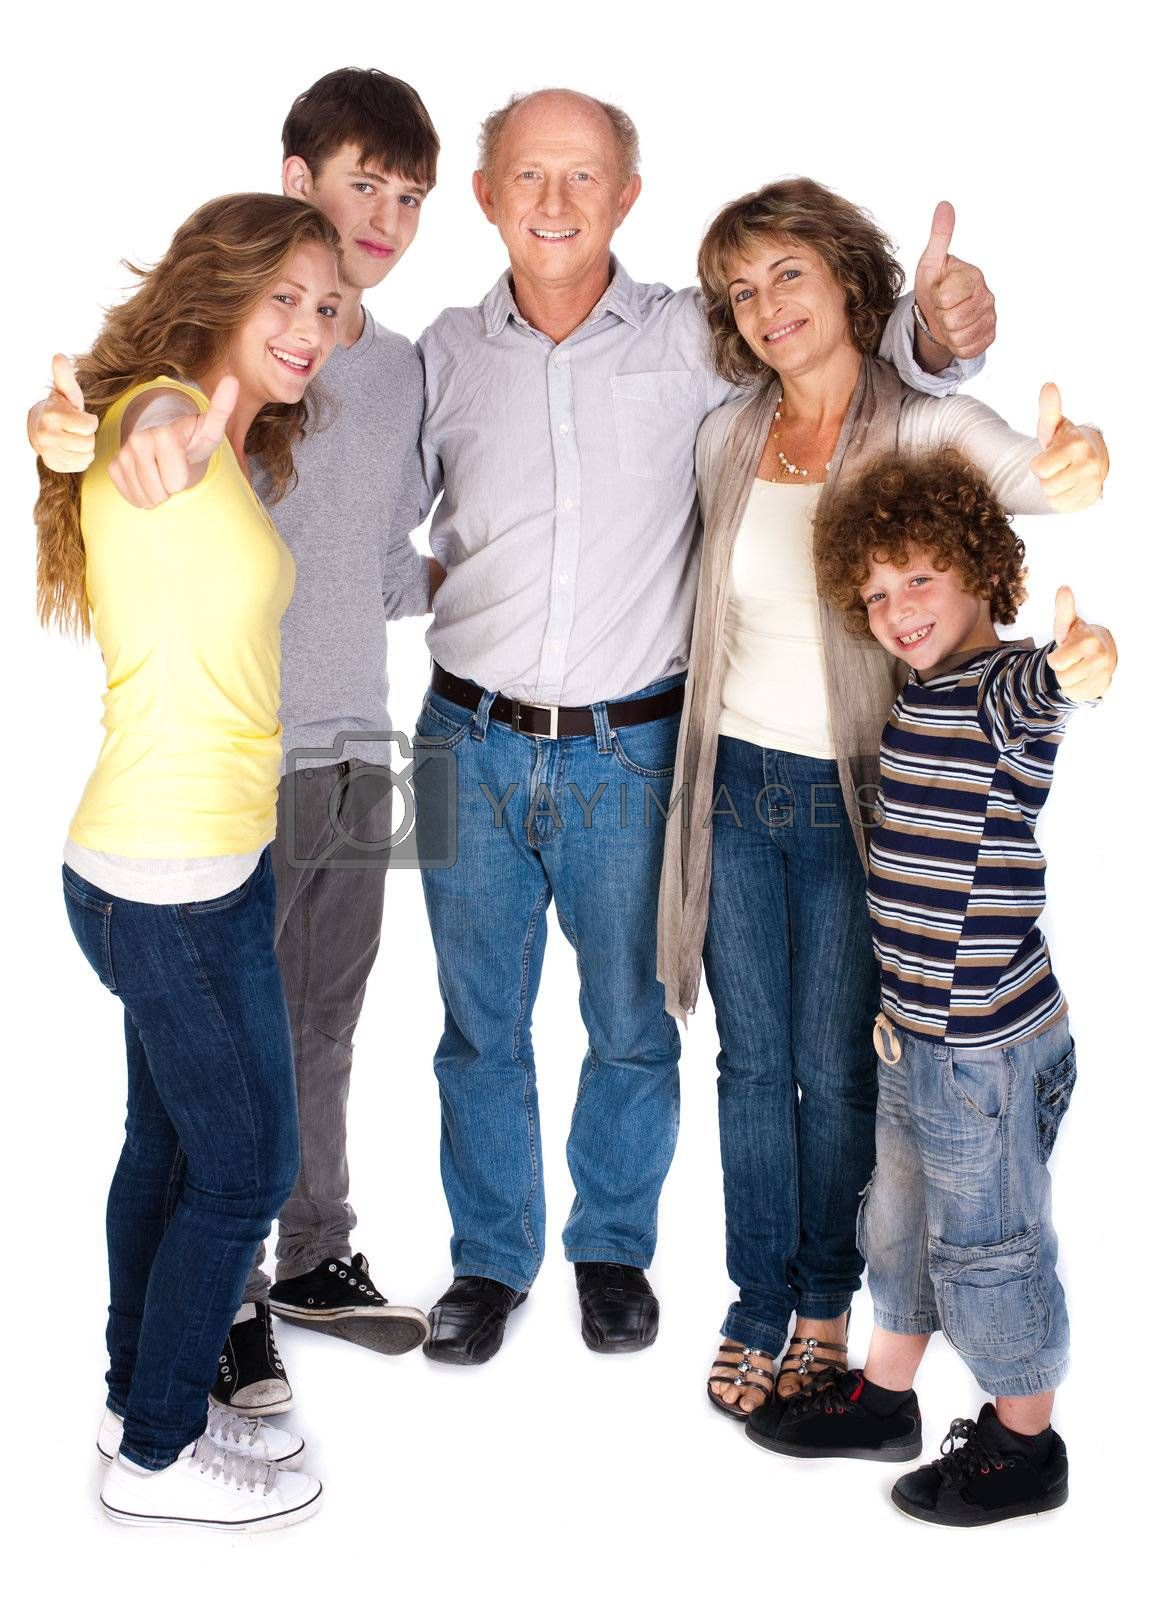 Stylish thumbs-up family over the white background.